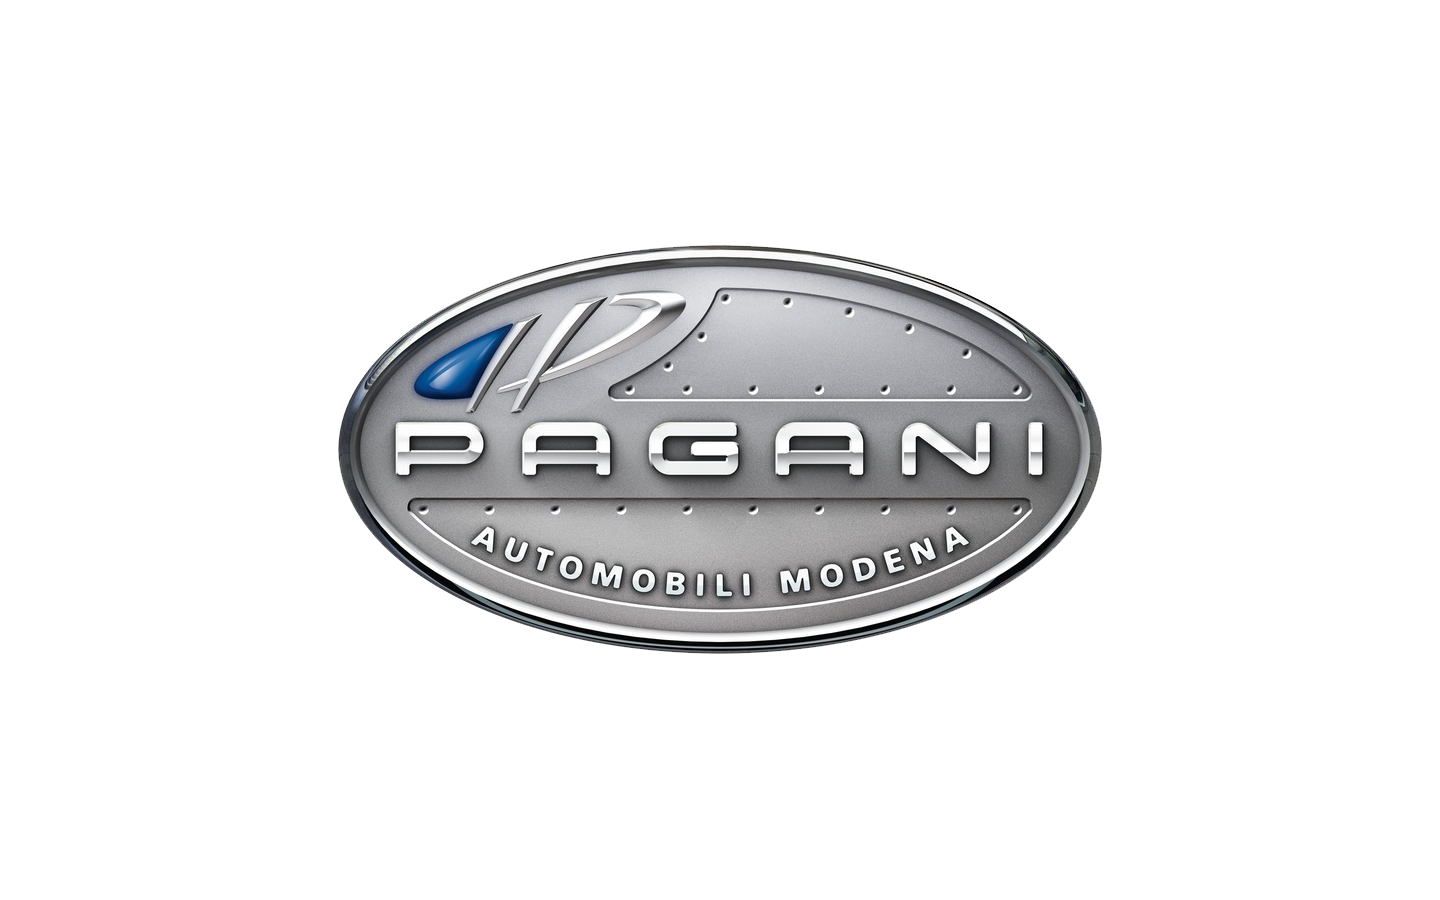 Car Brands Starting With P >> Cars That Start With The Letter P Car Names That Start With